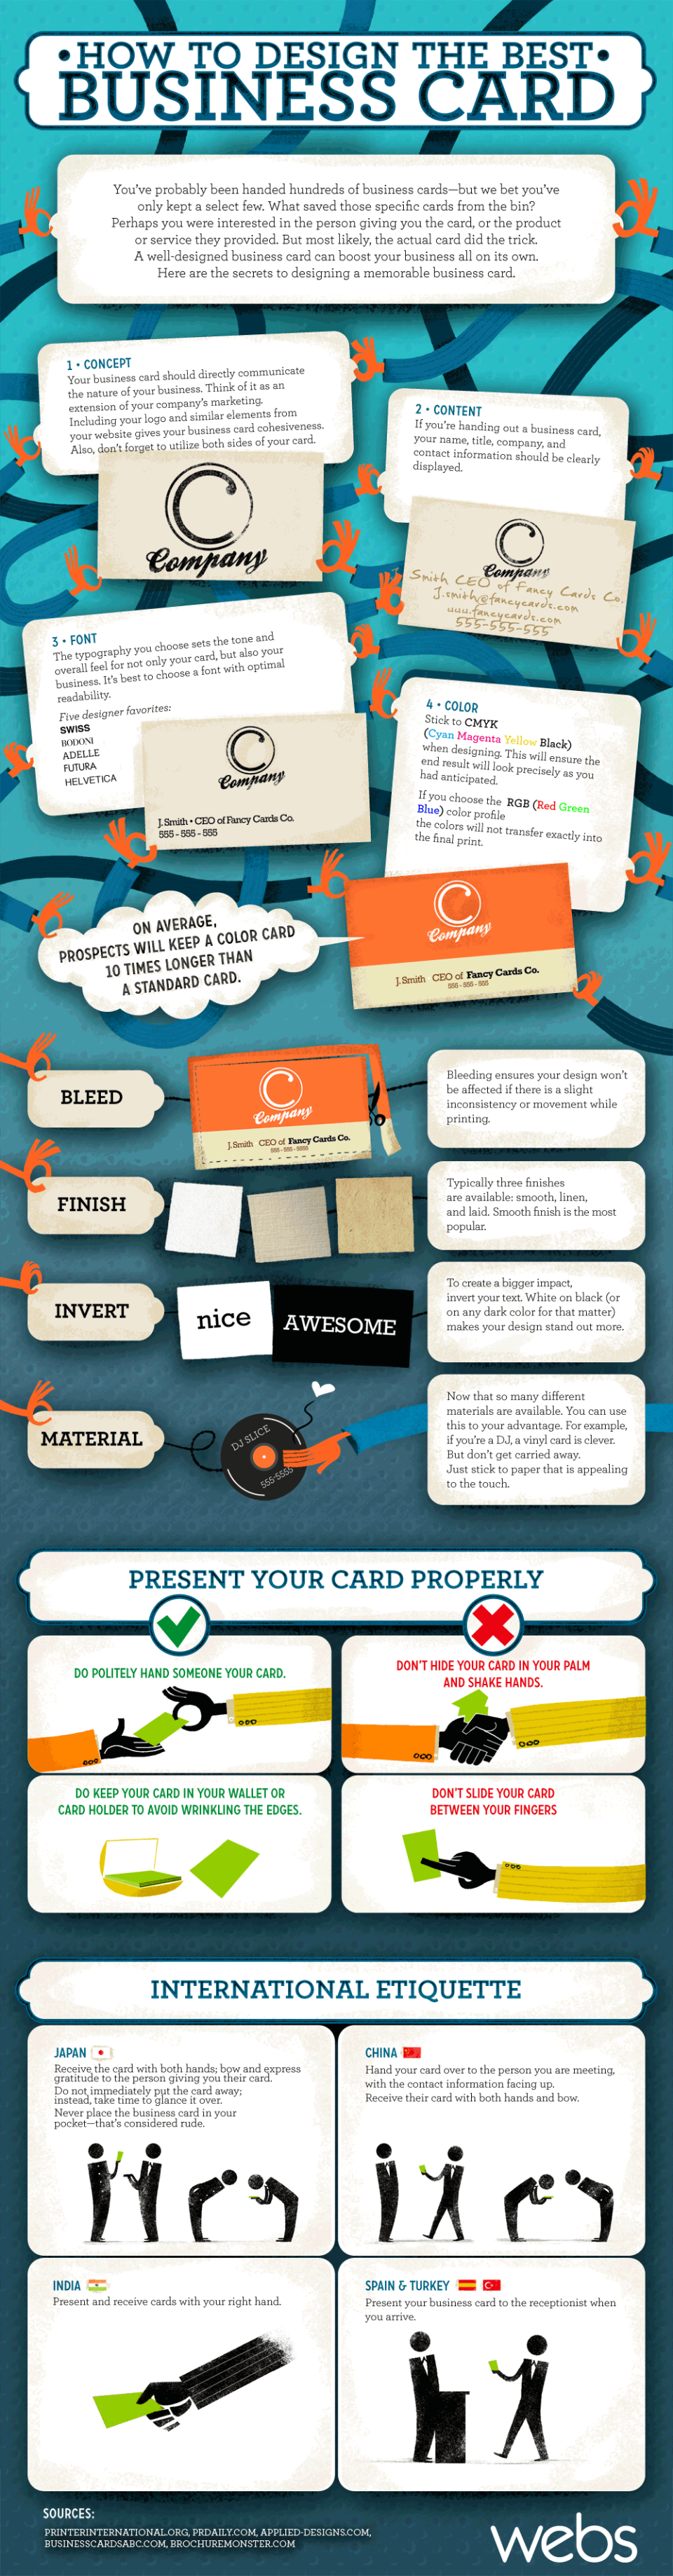 How-To-Design-The-Best-Business-Card